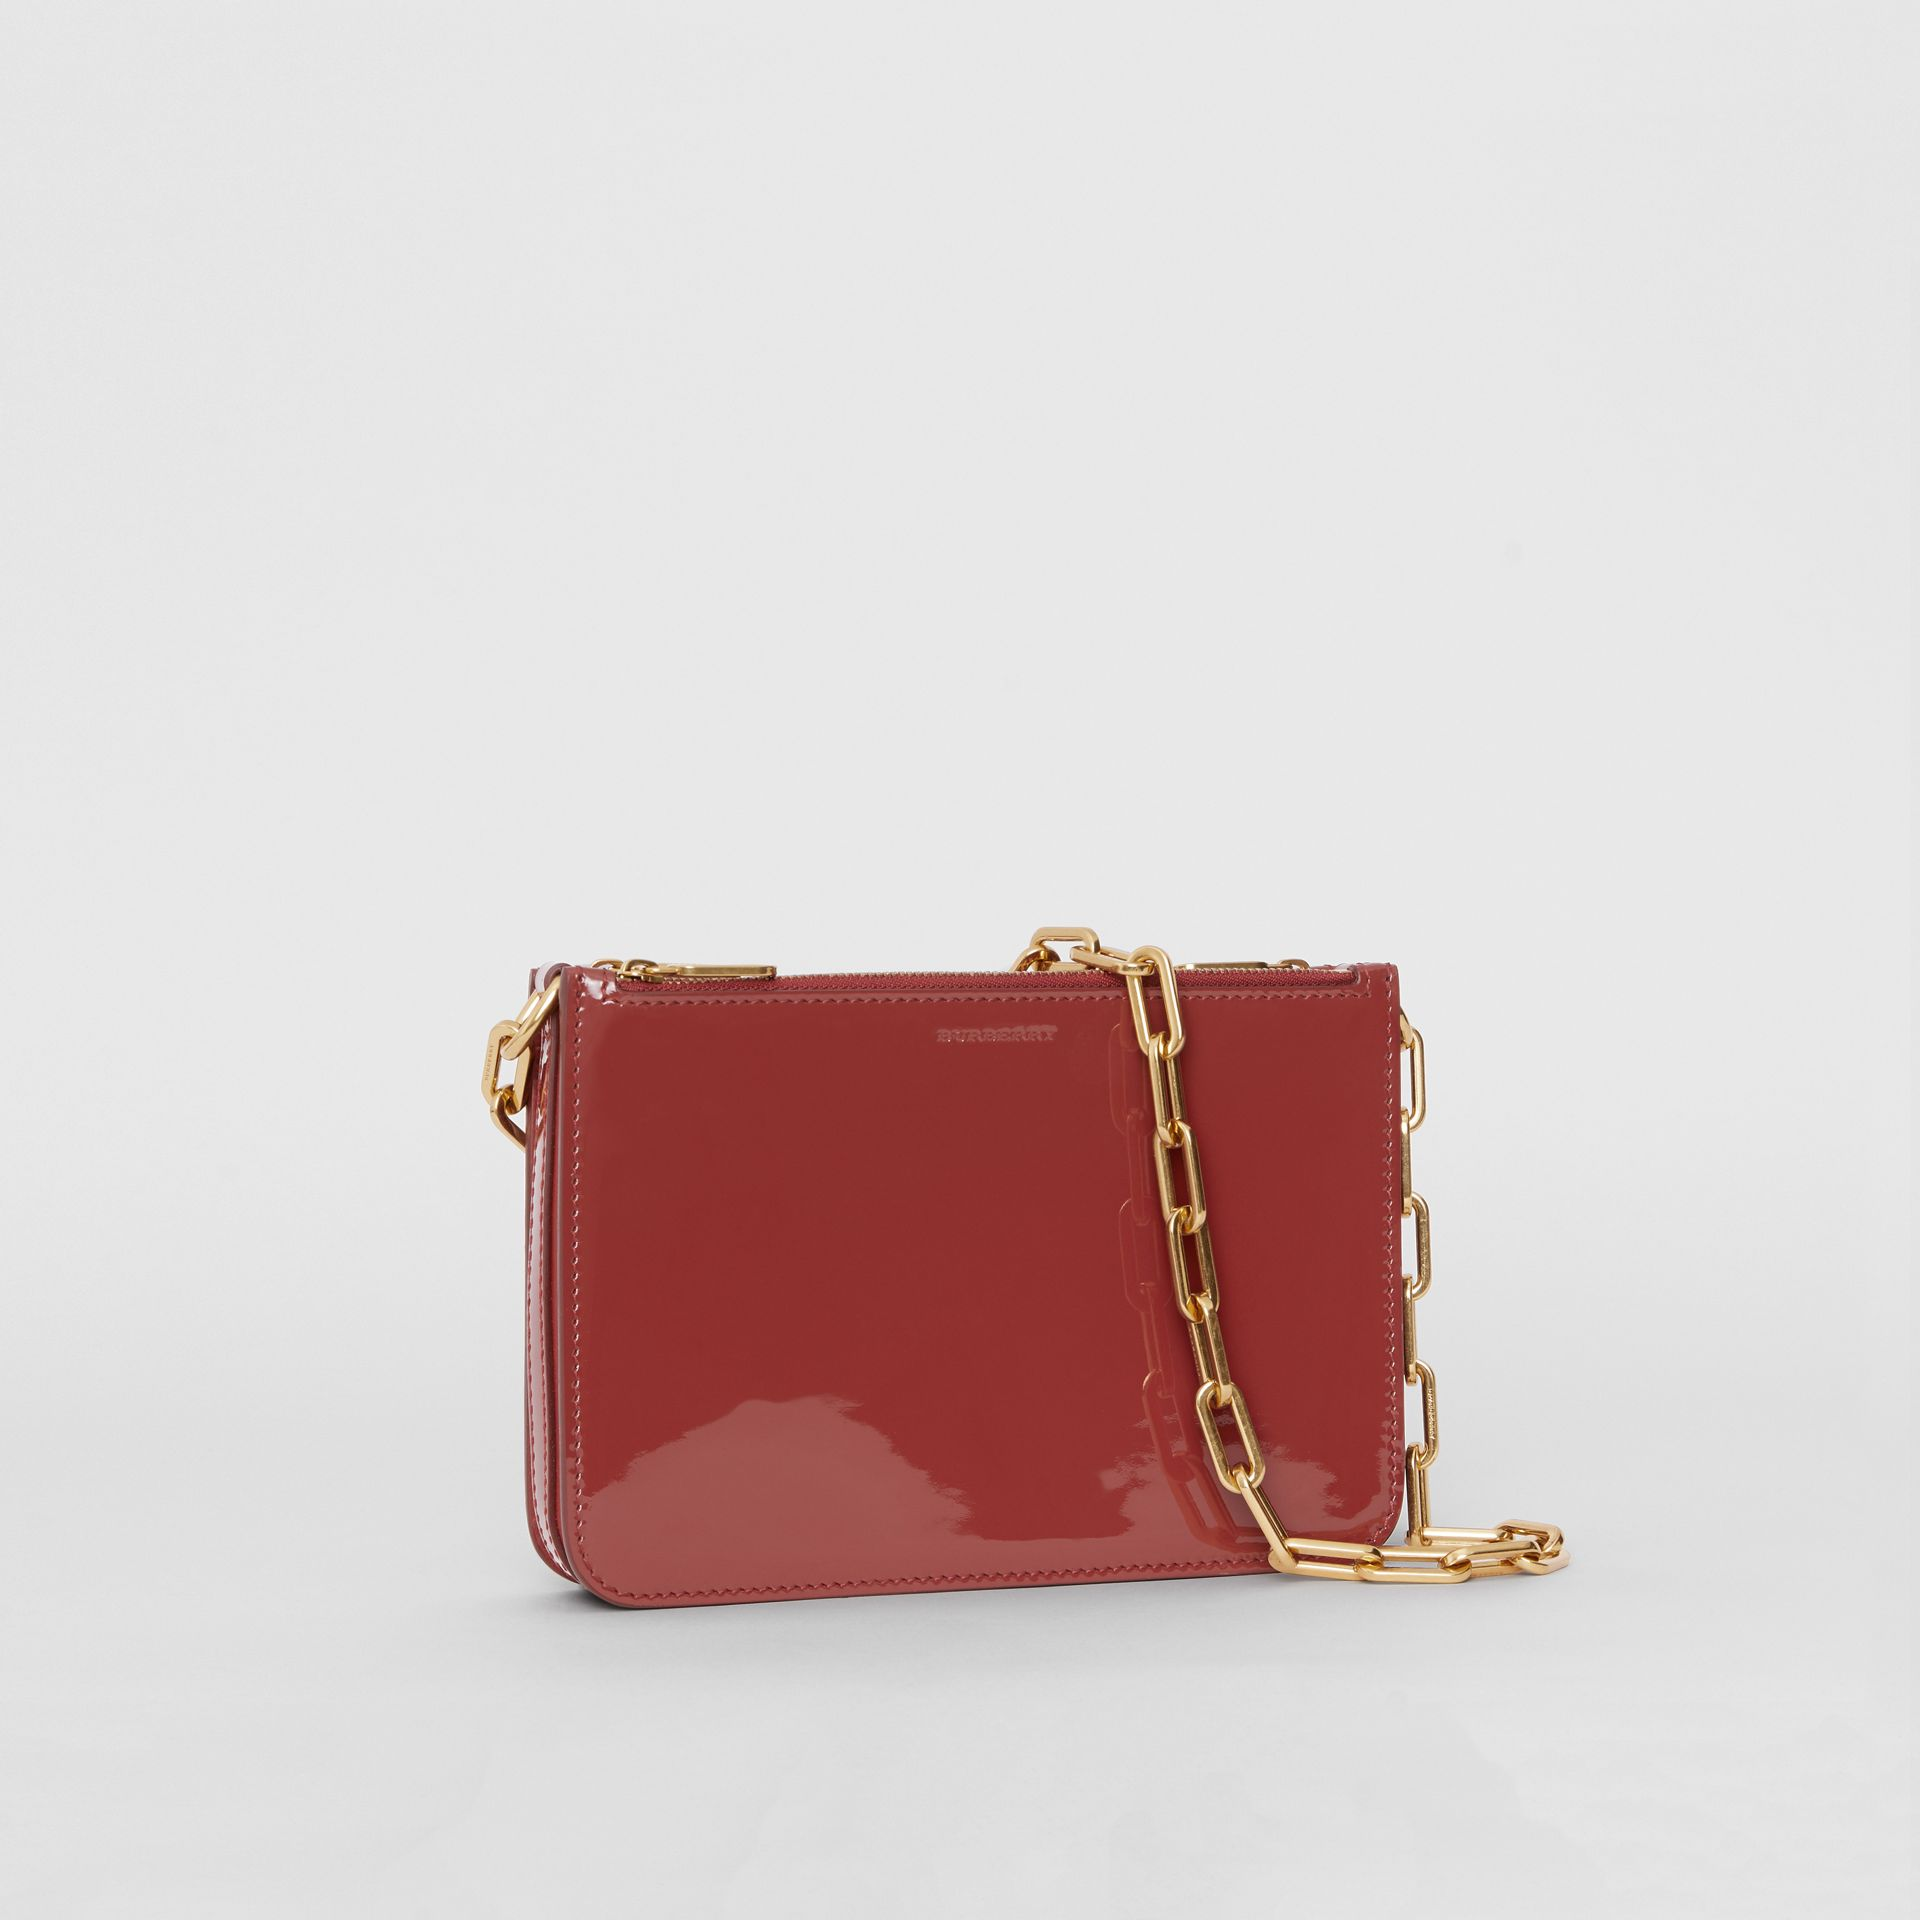 Triple Zip Patent Leather Crossbody Bag in Crimson - Women | Burberry - gallery image 6